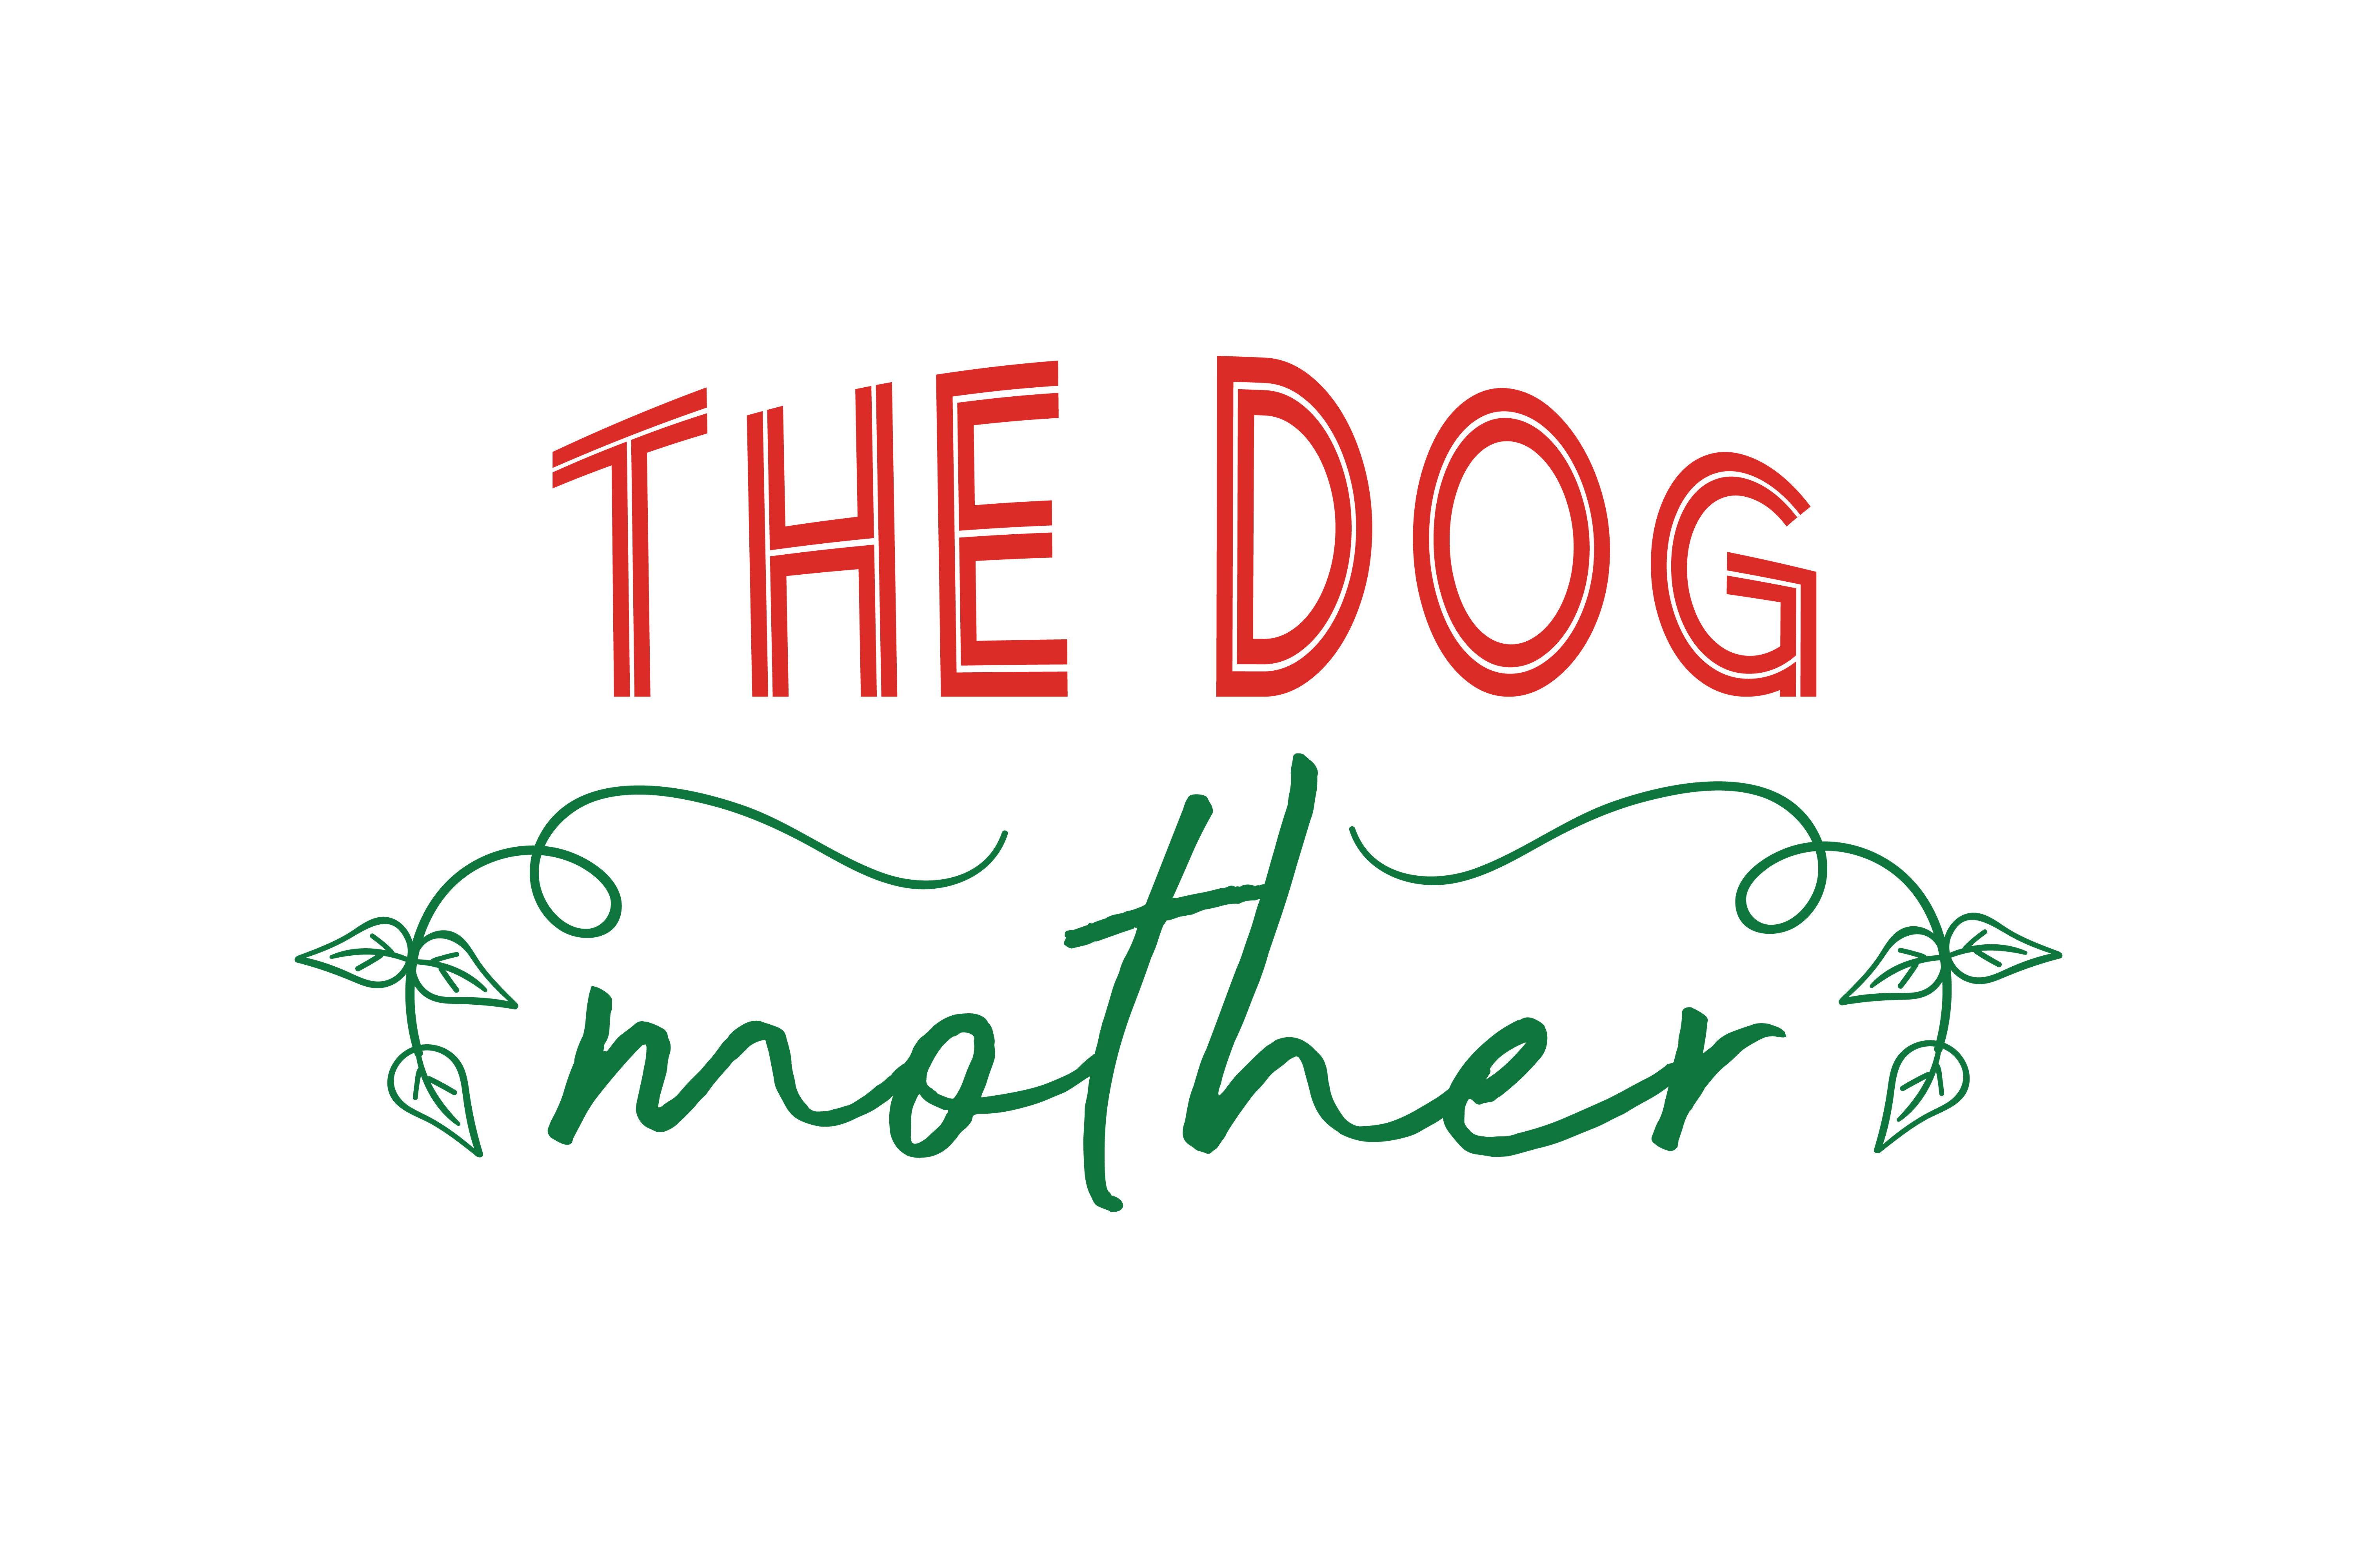 Download Free The Dog Mother Quote Svg Cut Graphic By Thelucky Creative Fabrica for Cricut Explore, Silhouette and other cutting machines.